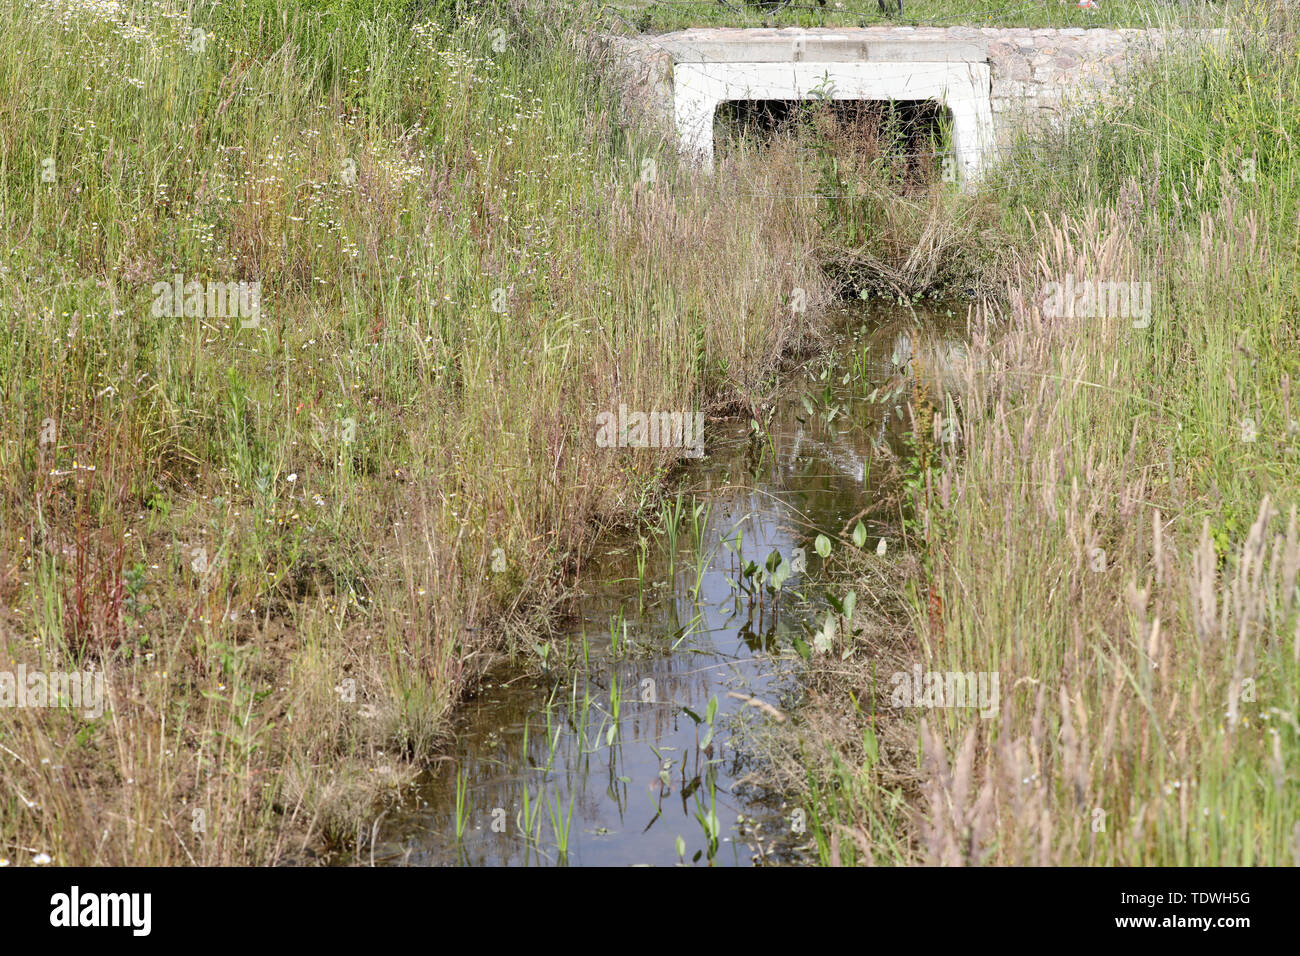 Rostock, Germany. 18th June, 2019. The developed watercourse 2/8 in the district Evershagen, inlet to the Schmarler Bach. After the redesign of the watercourse, the Evershagen district is largely protected from flooding. At a press event on watercourse 2/8, the Hanseatic city's drainage concept for heavy rainfall is presented. After the heavy rain of 2011, a drainage plan for Rostock has been drawn up in recent years, according to which the 50 main flow paths and 150 secondary flow paths will be extended. Credit: Bernd Wüstneck/dpa-Zentralbild/ZB/dpa/Alamy Live News Stock Photo